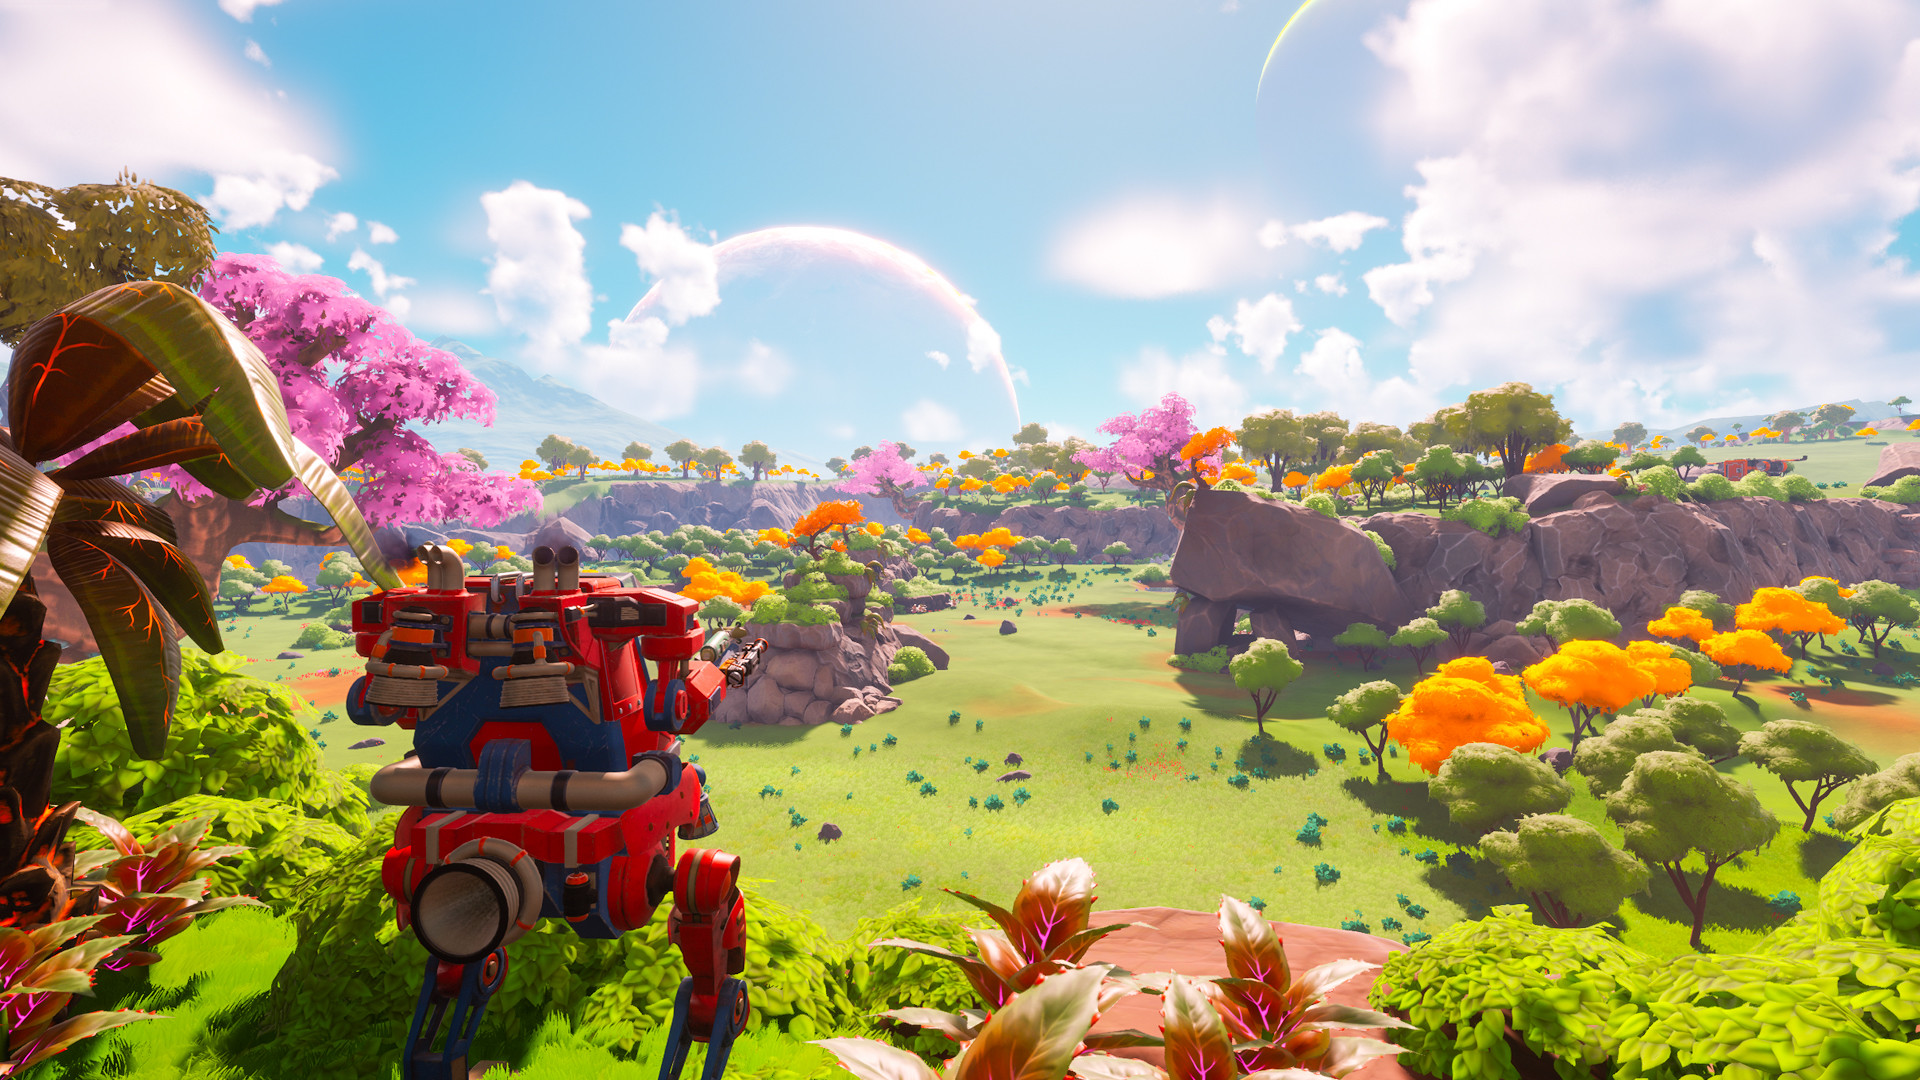 Lightyear Frontier looks like Stardew Valley with a dash of No Man's Sky